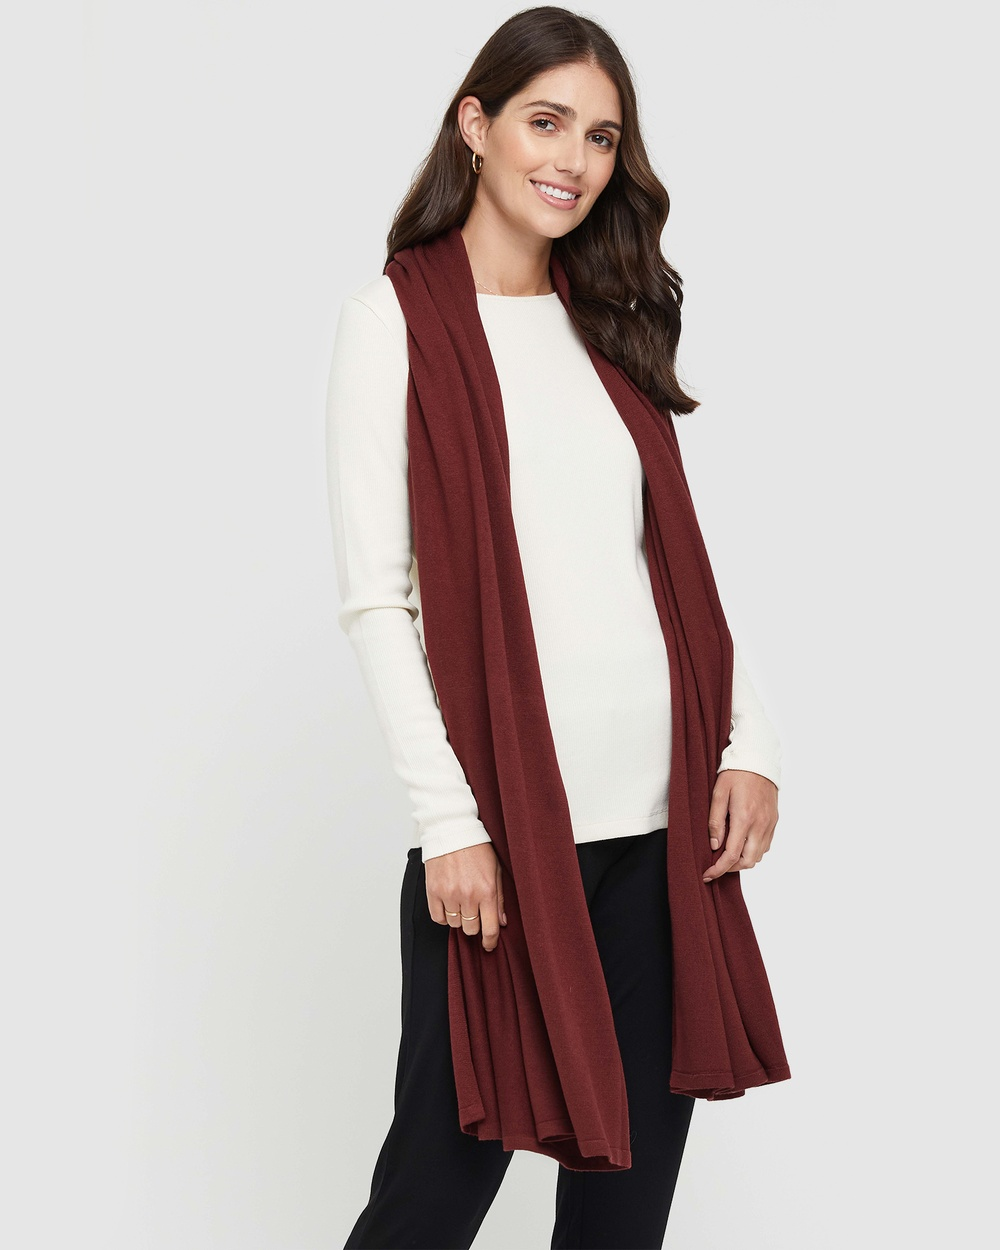 Bamboo Body Cashmere Wool Travel Wrap Wraps & Blankets Burnt Brick